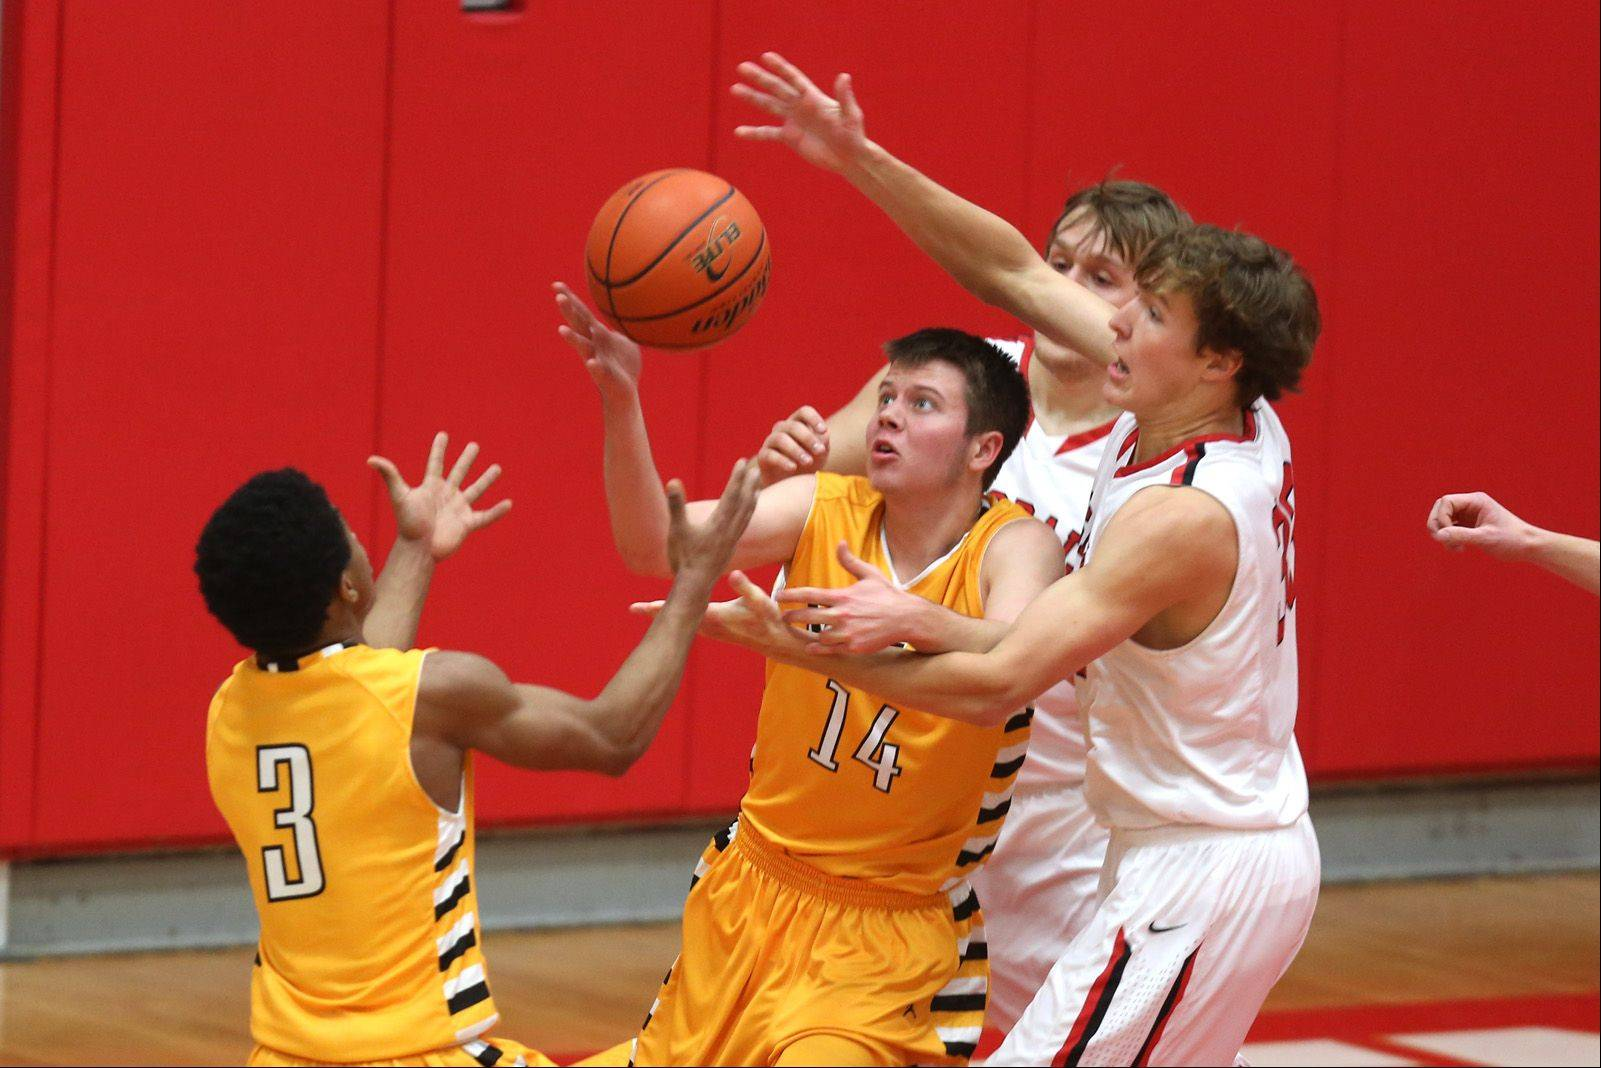 Metea Valley's Bryson Oliver and Nick Klepper move into Hinsdale Central's Grant Lillard, right.